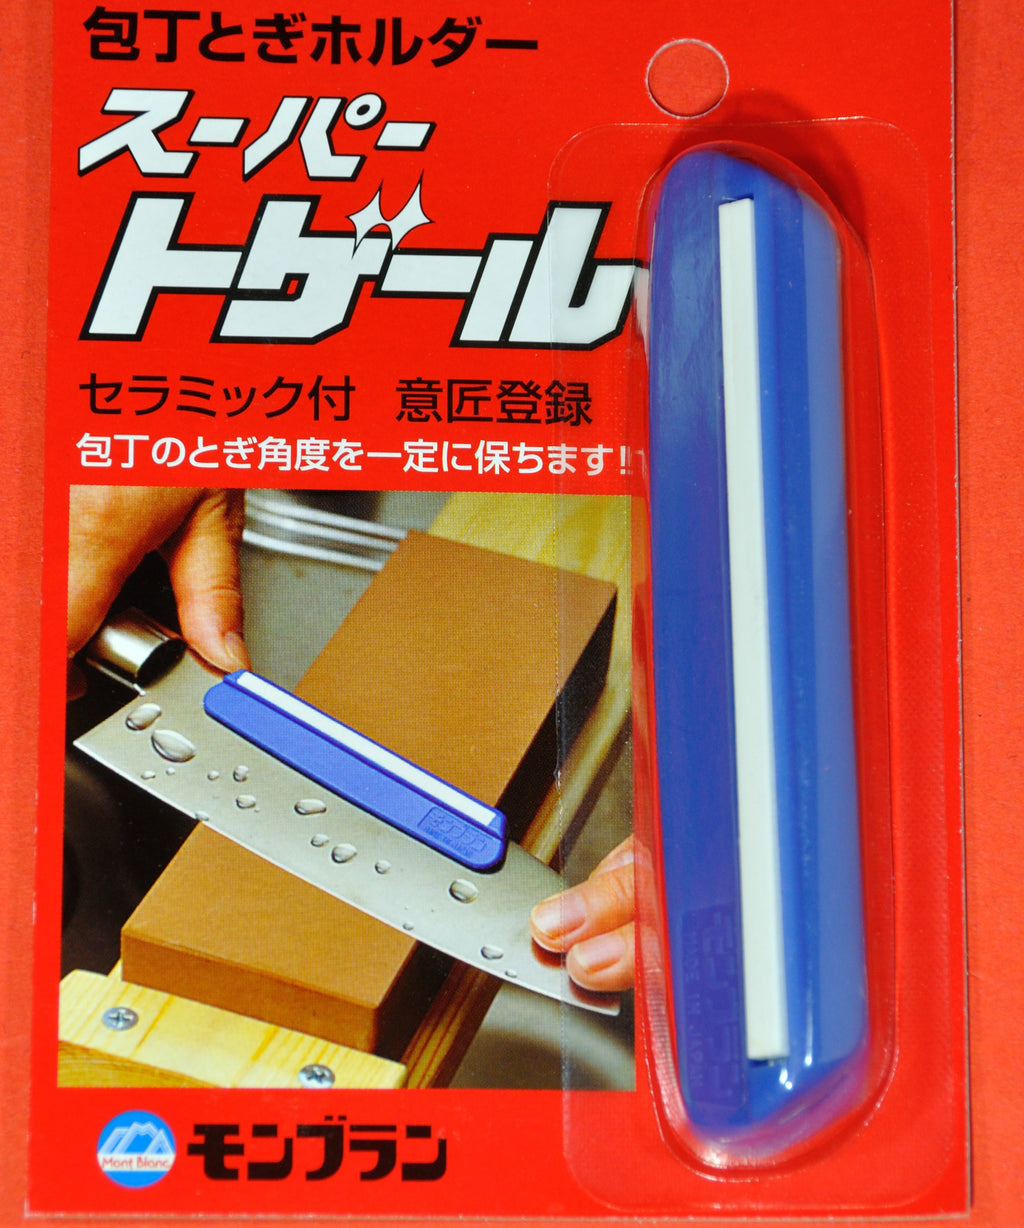 Knife sharpener ceramic guide for waterstone whetstone Japan japanese